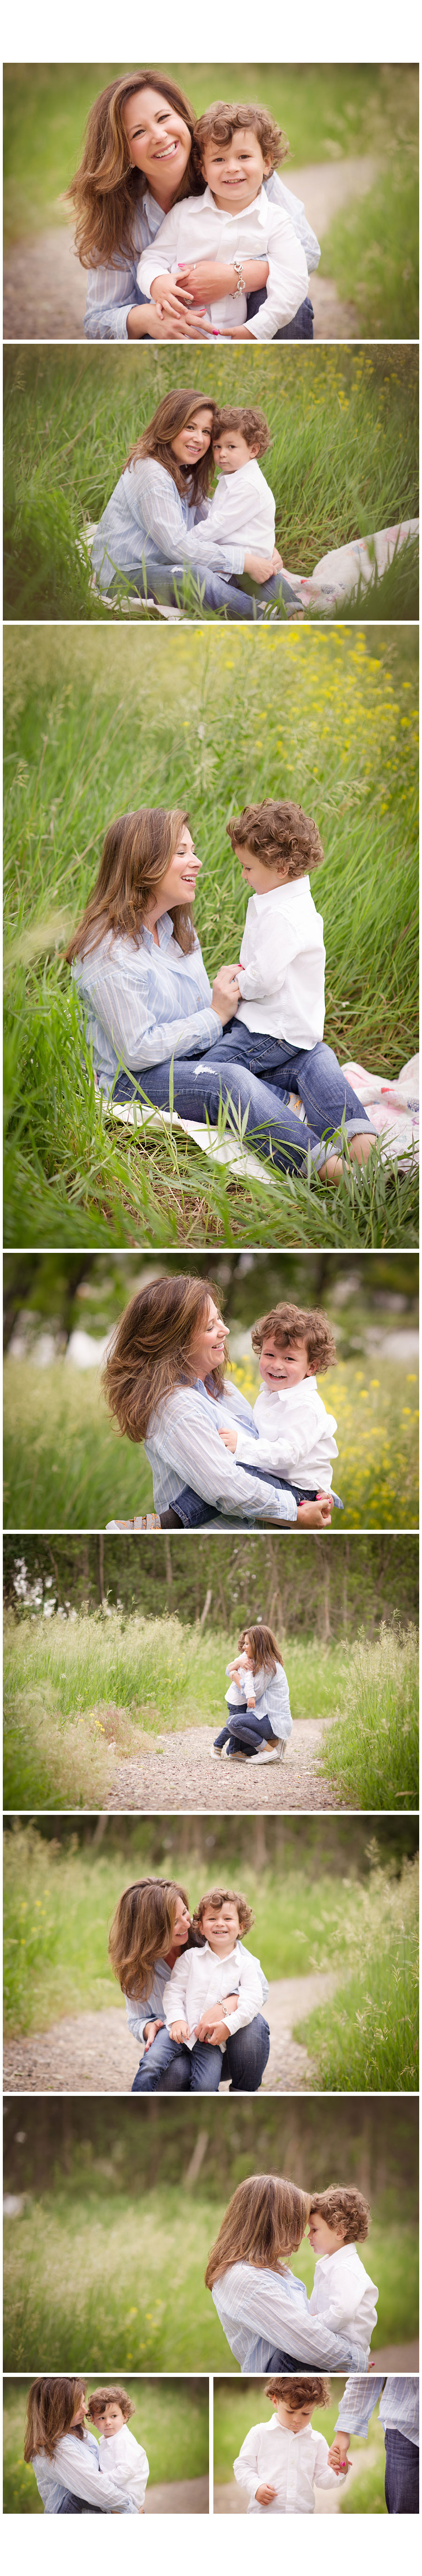 mom-and-me-minisessions-tina-stinson-photography.jpg